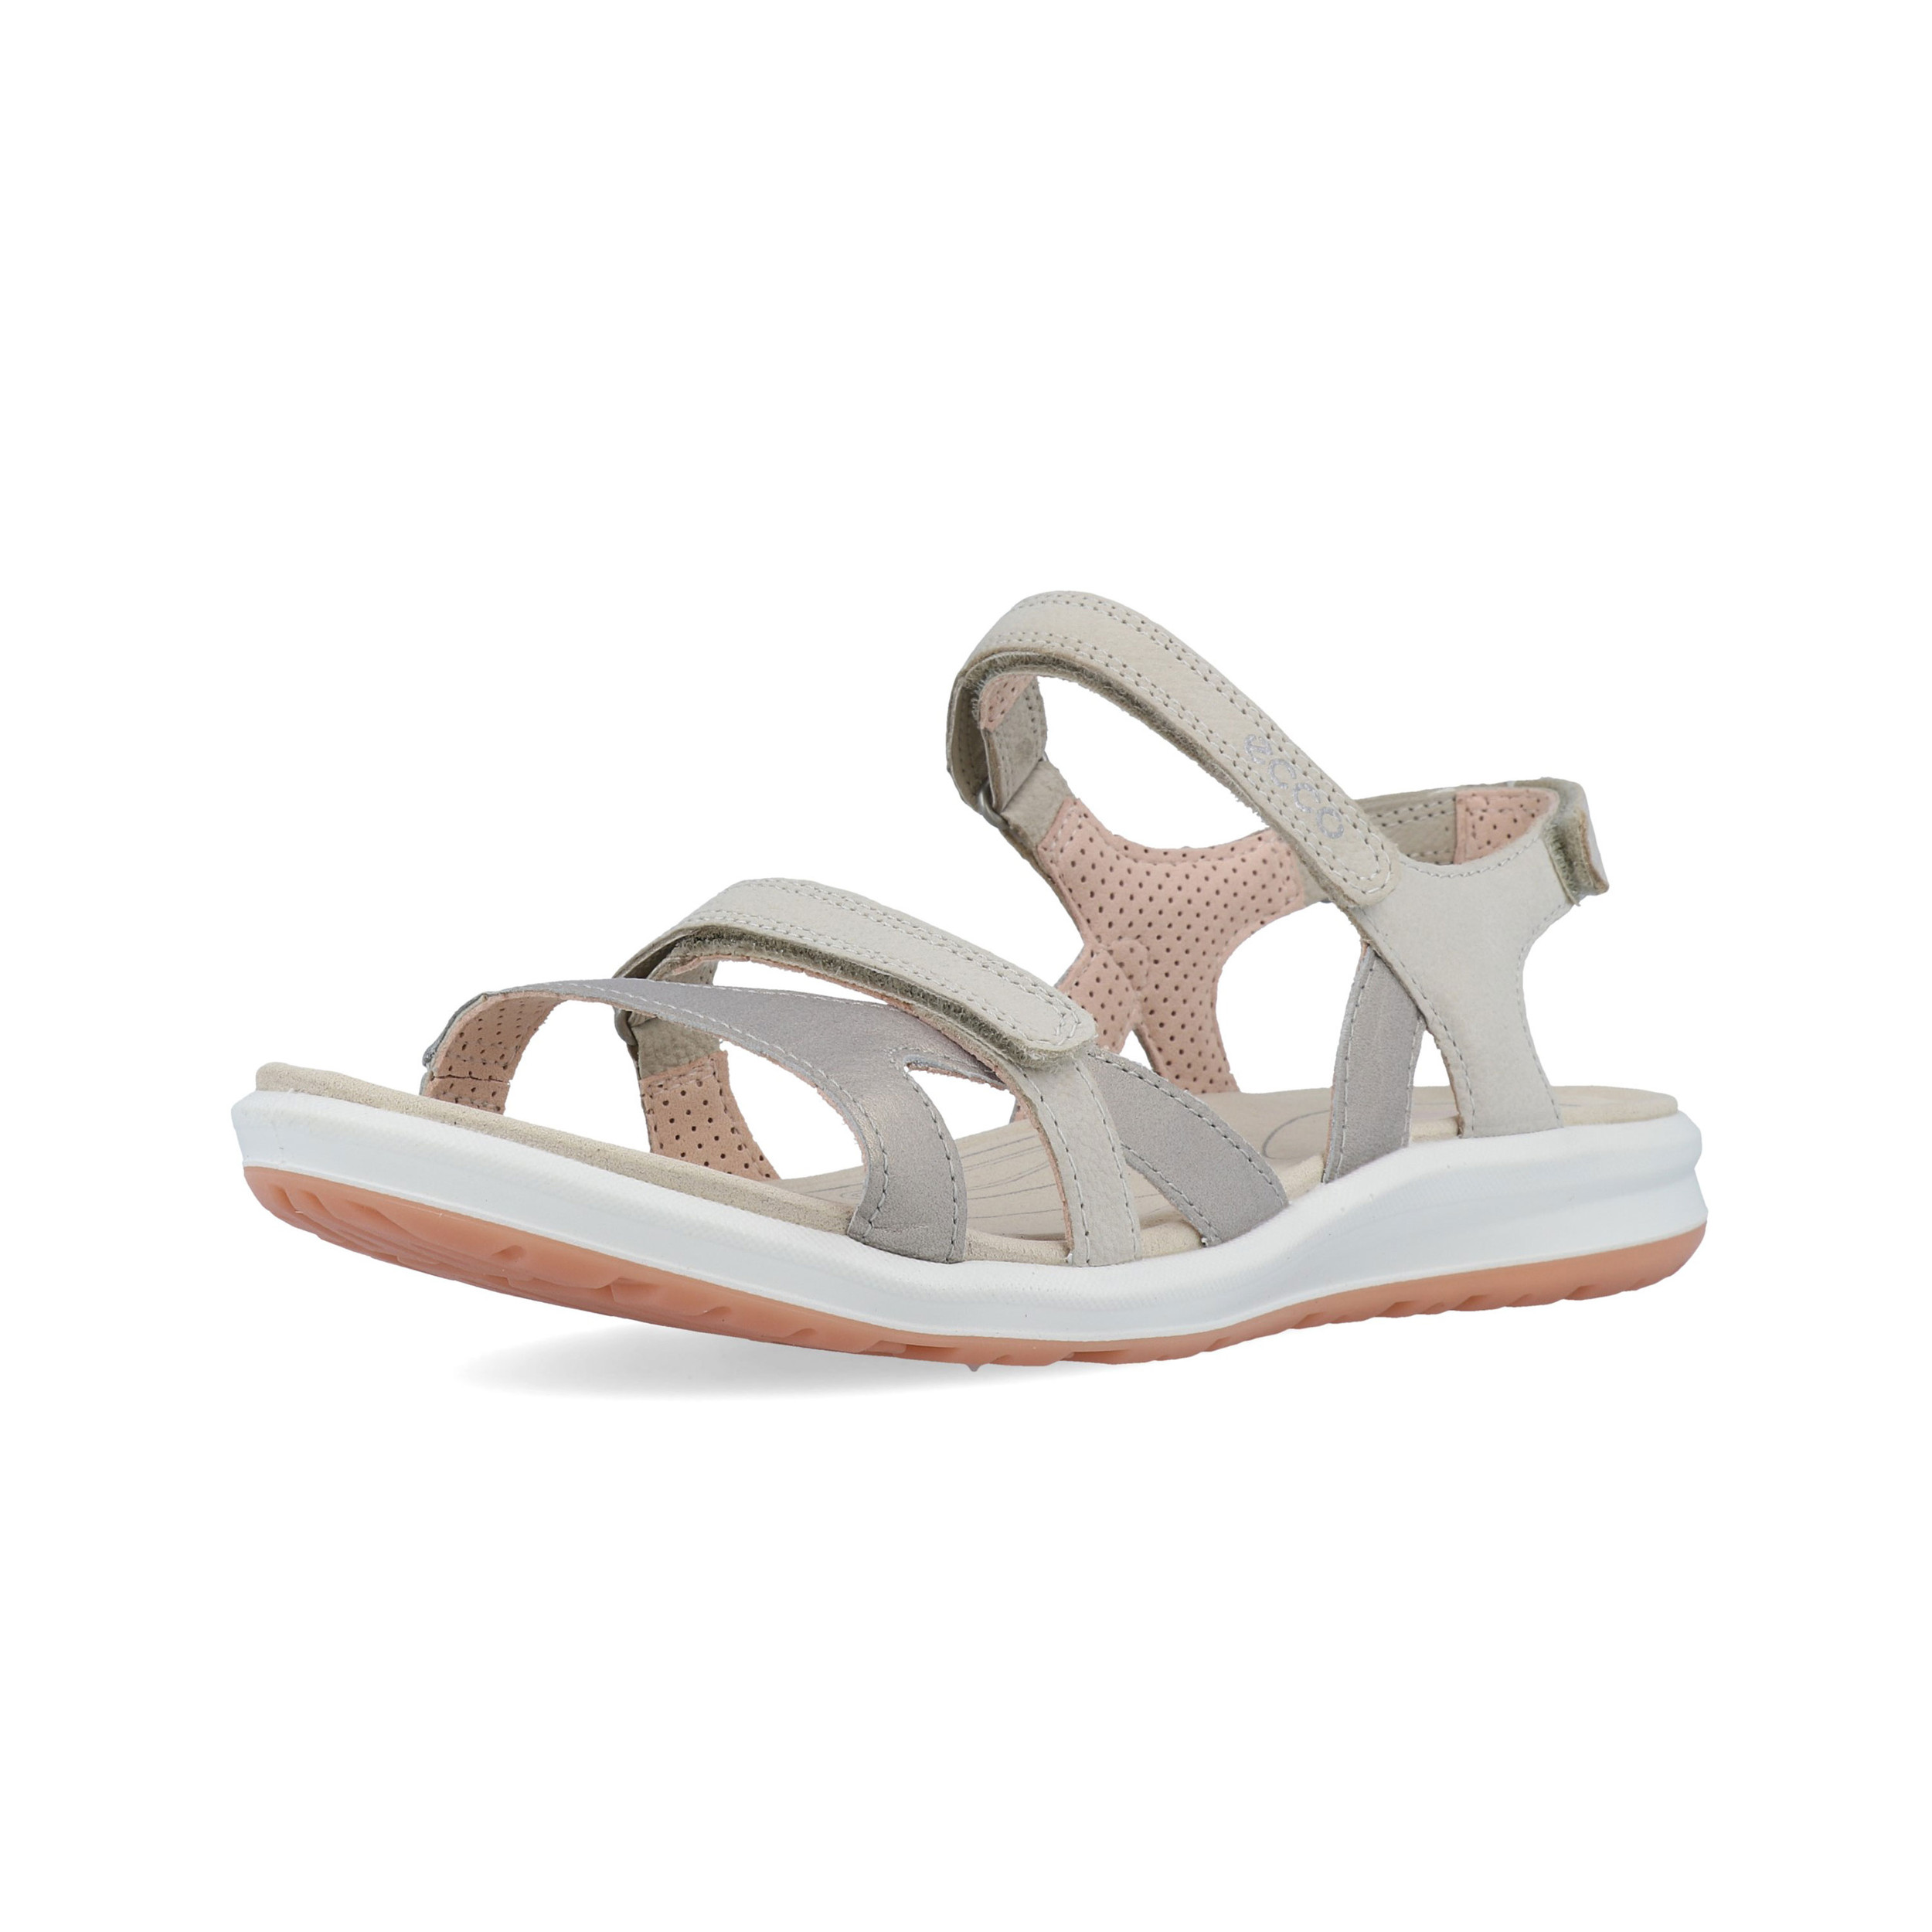 33f9bd9a51 Details about Ecco Womens Cruise II Walking Shoes Sandals White Sports  Outdoors Breathable